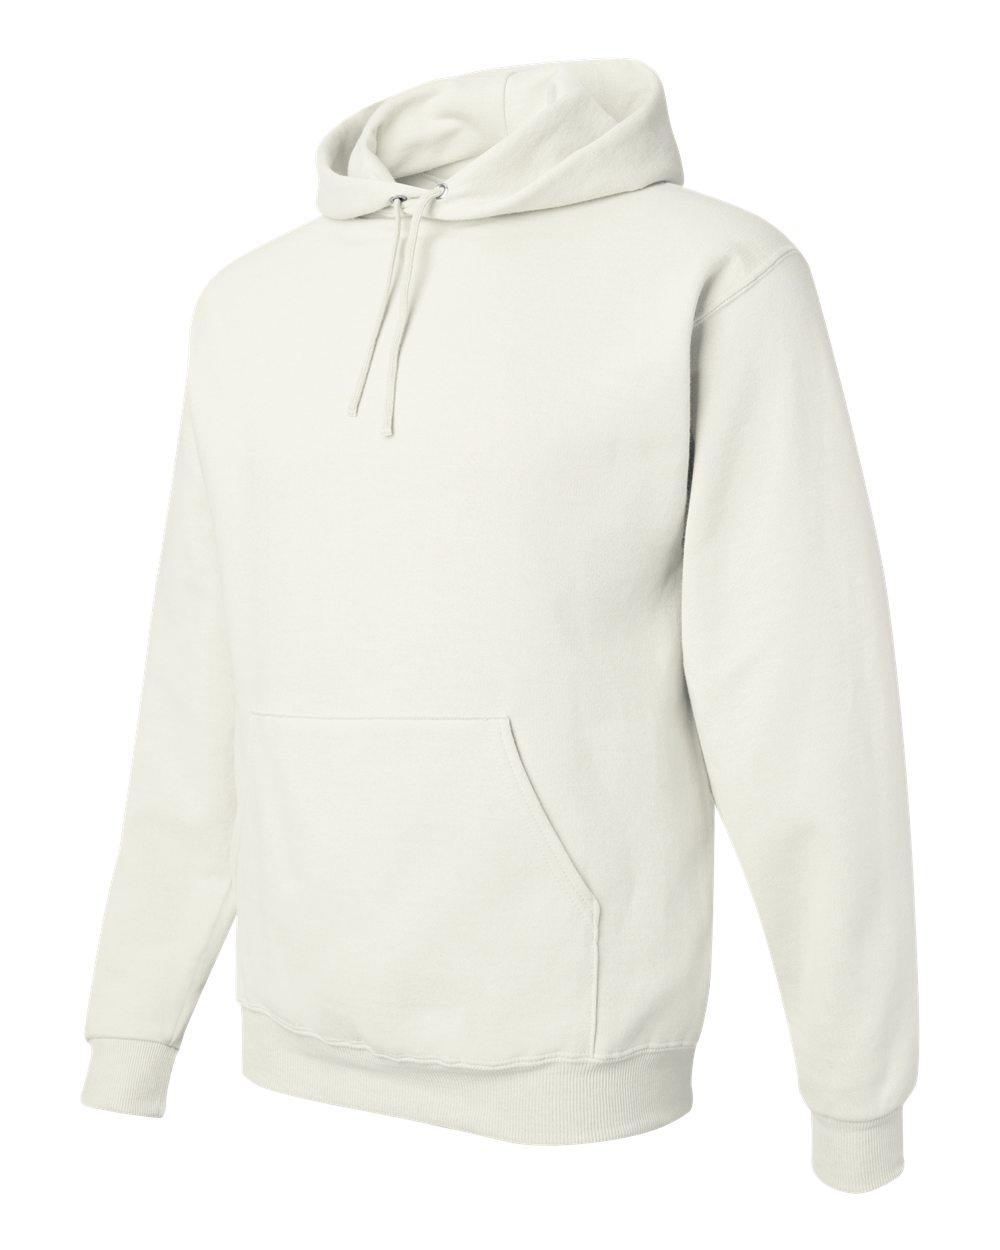 Jerzees nublend hooded sweatshirt also walmart rh